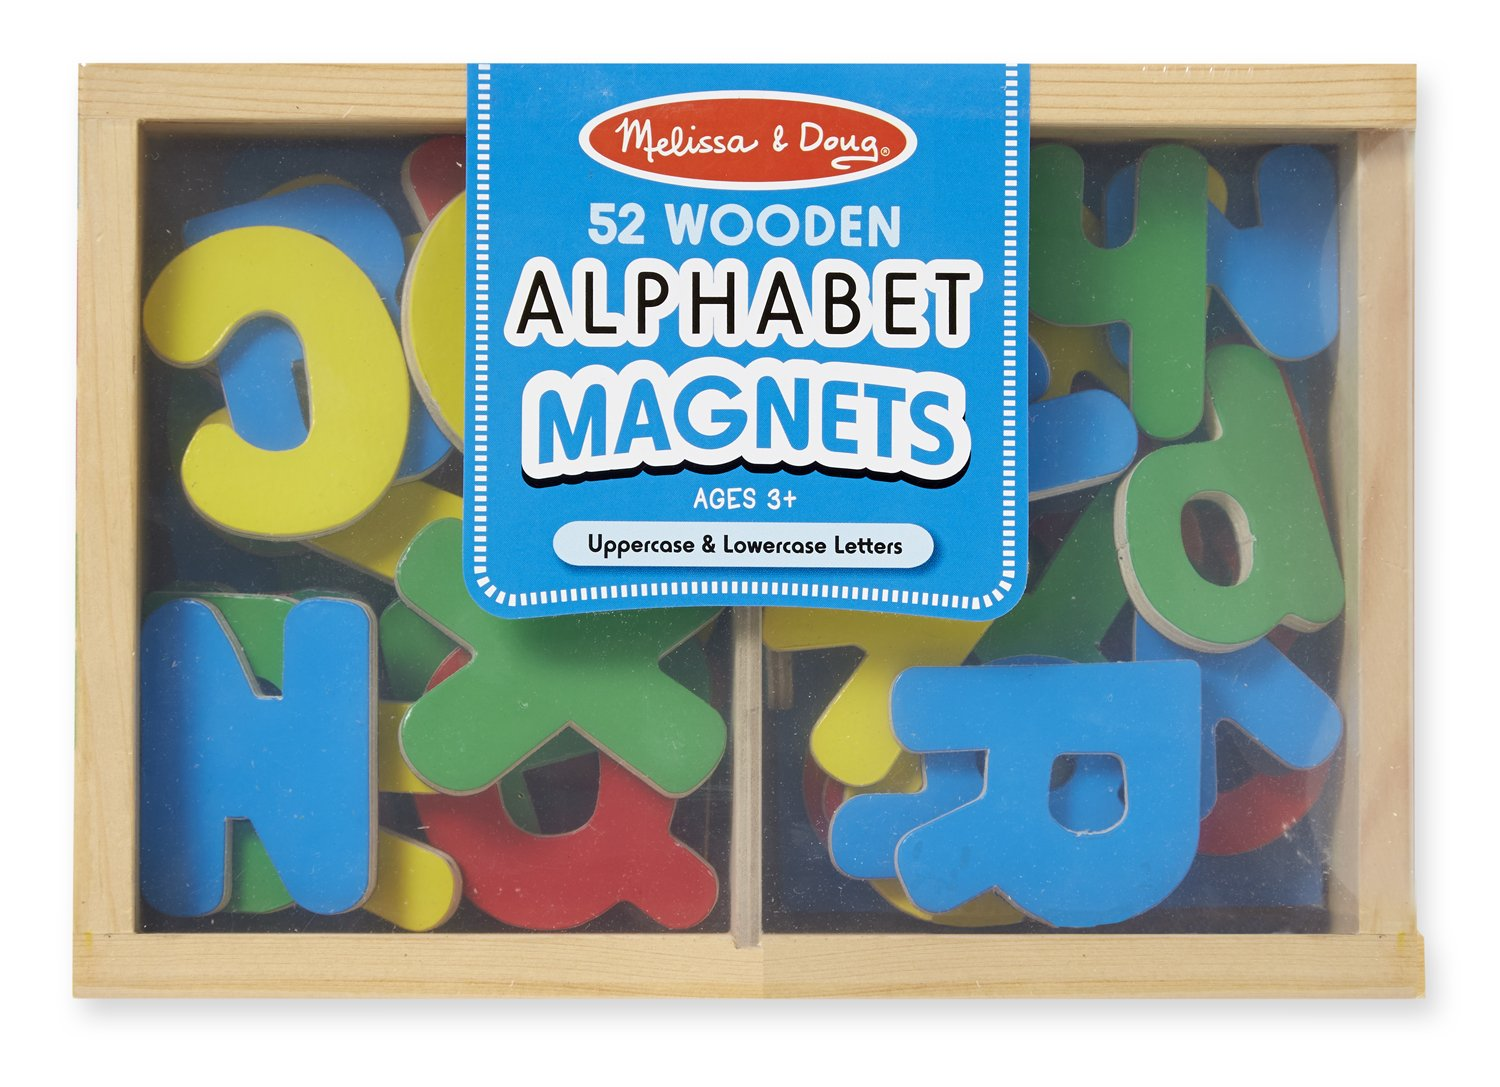 Melissa & Doug 52 Wooden Alphabet Magnets in a Box - Uppercase and Lowercase Letters 448 Puzzles